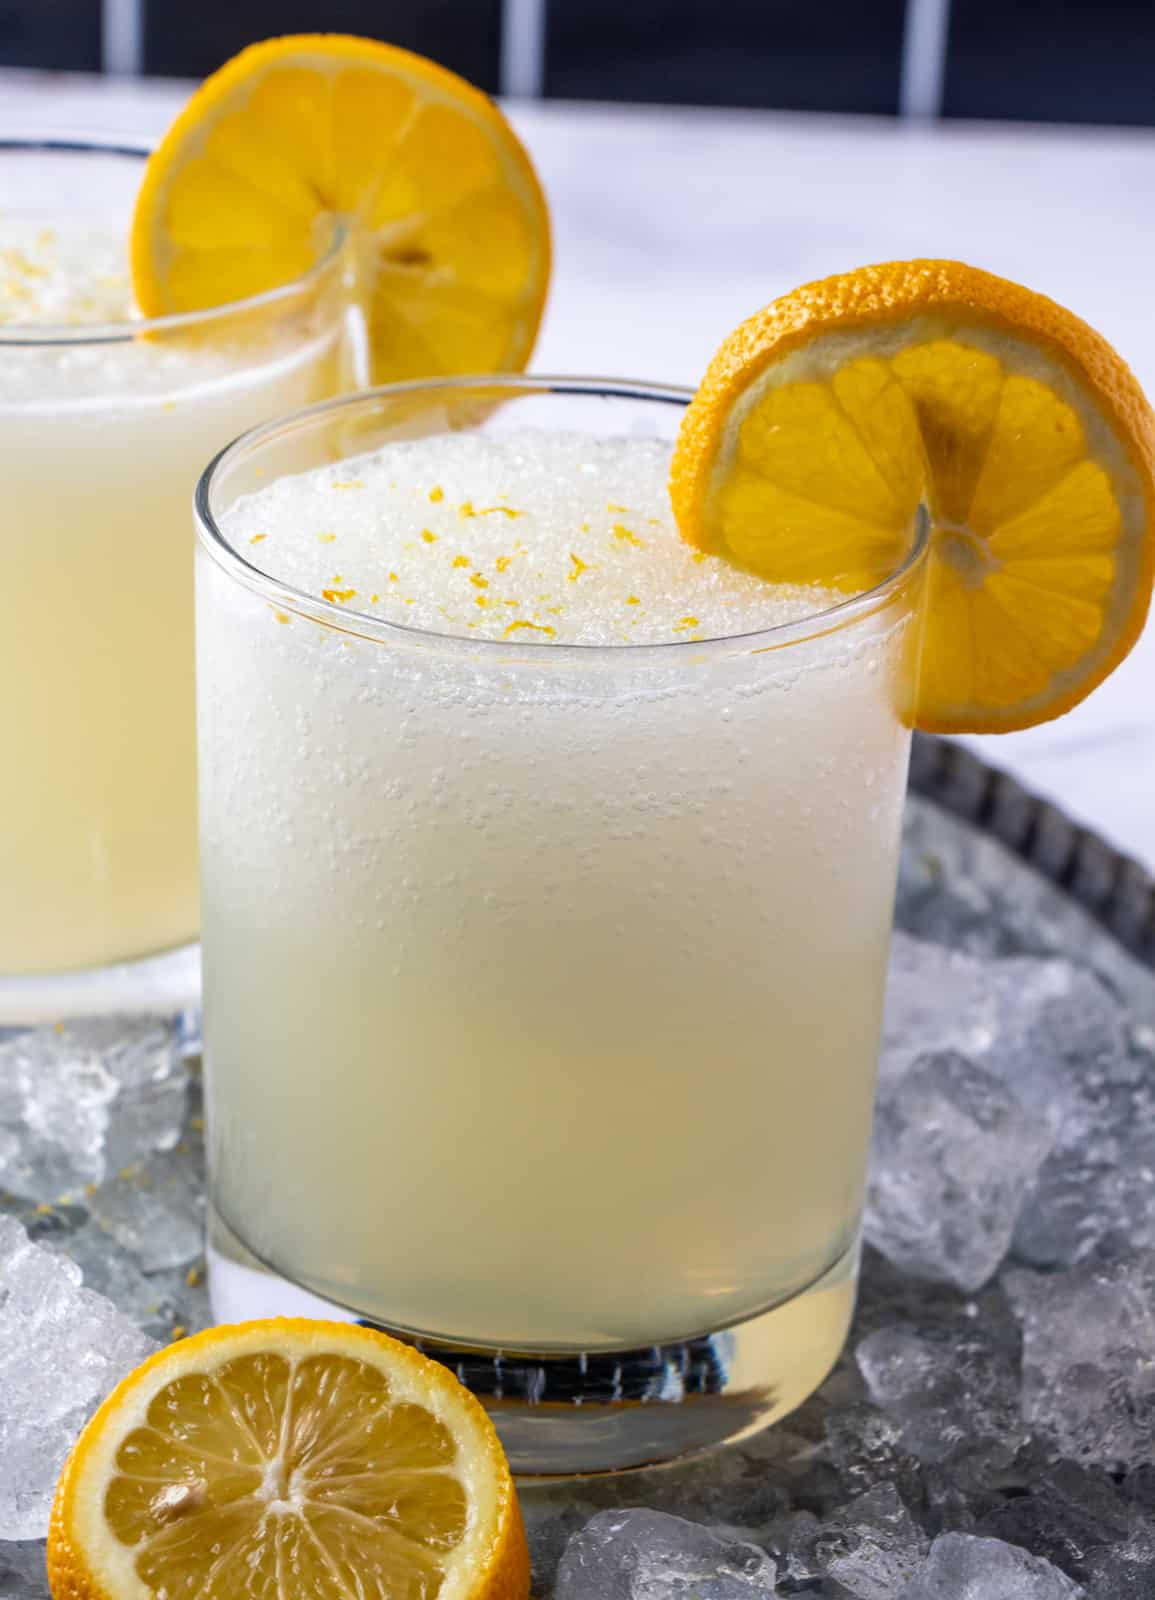 lemonade in glass surrounded by ice and garnished with lemon